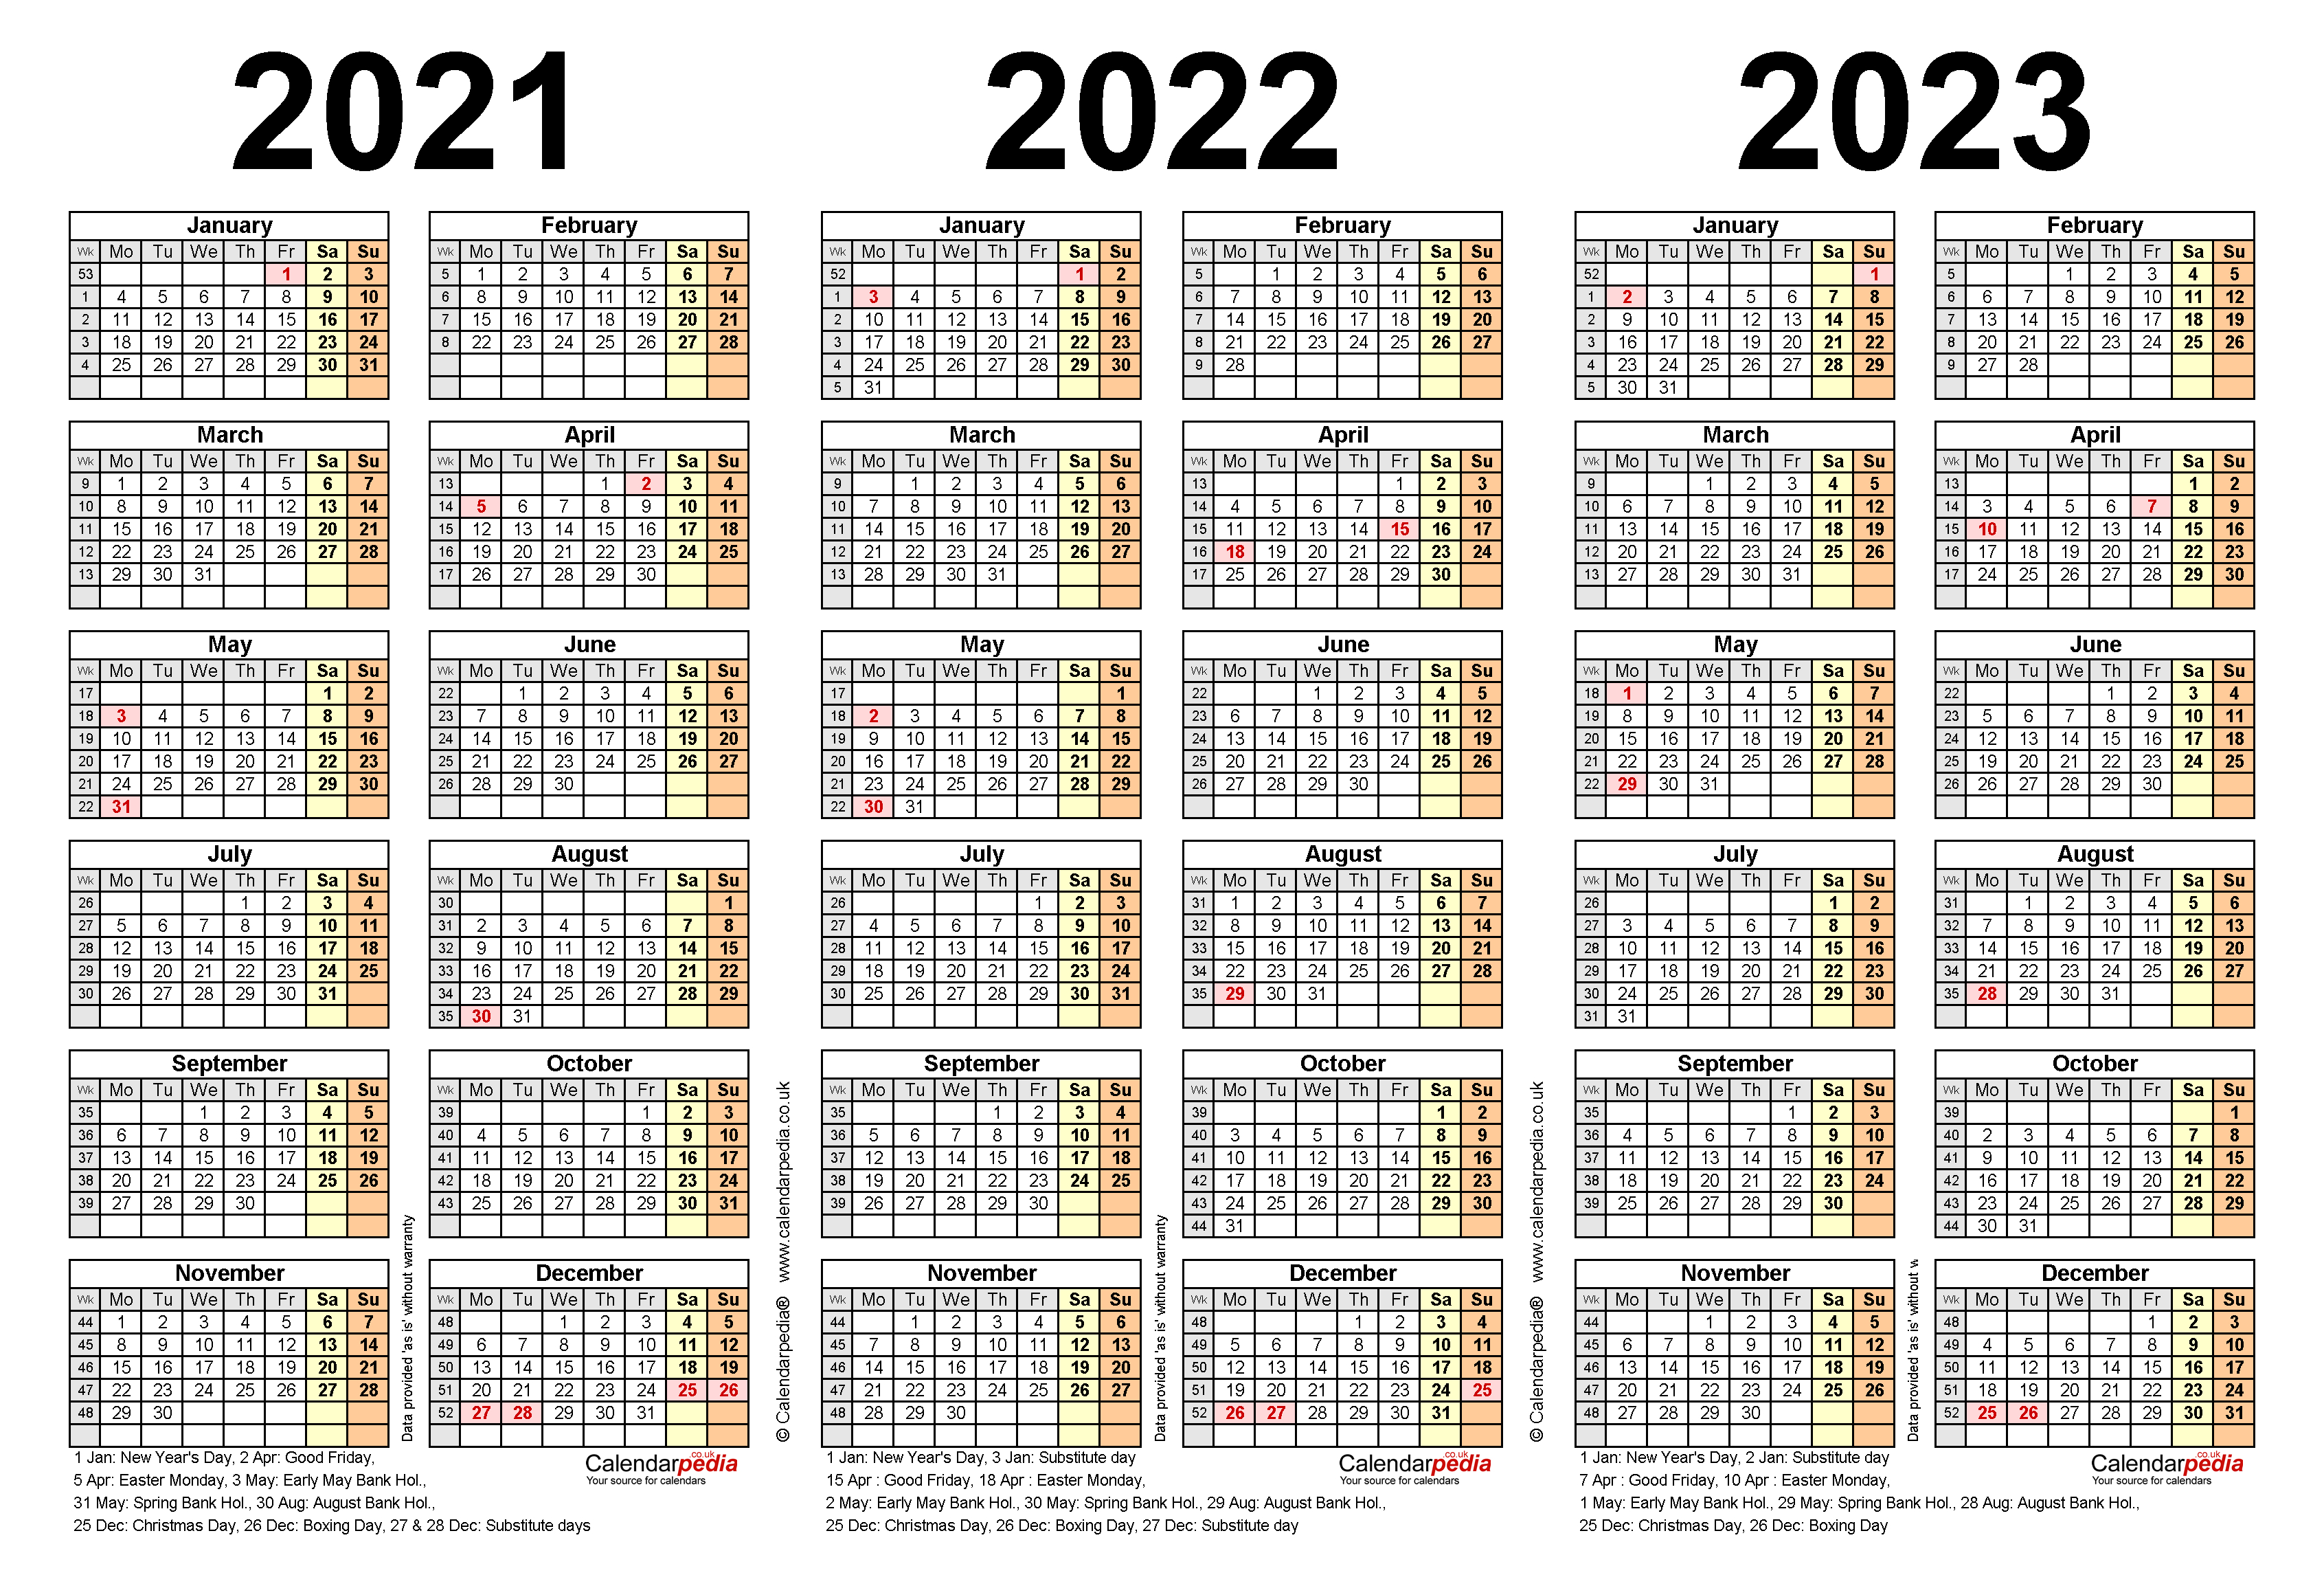 Three Year Calendars For 2021, 2022 & 2023 (Uk) For Pdf with regard to 3 Year Calendar 2020 To 2023